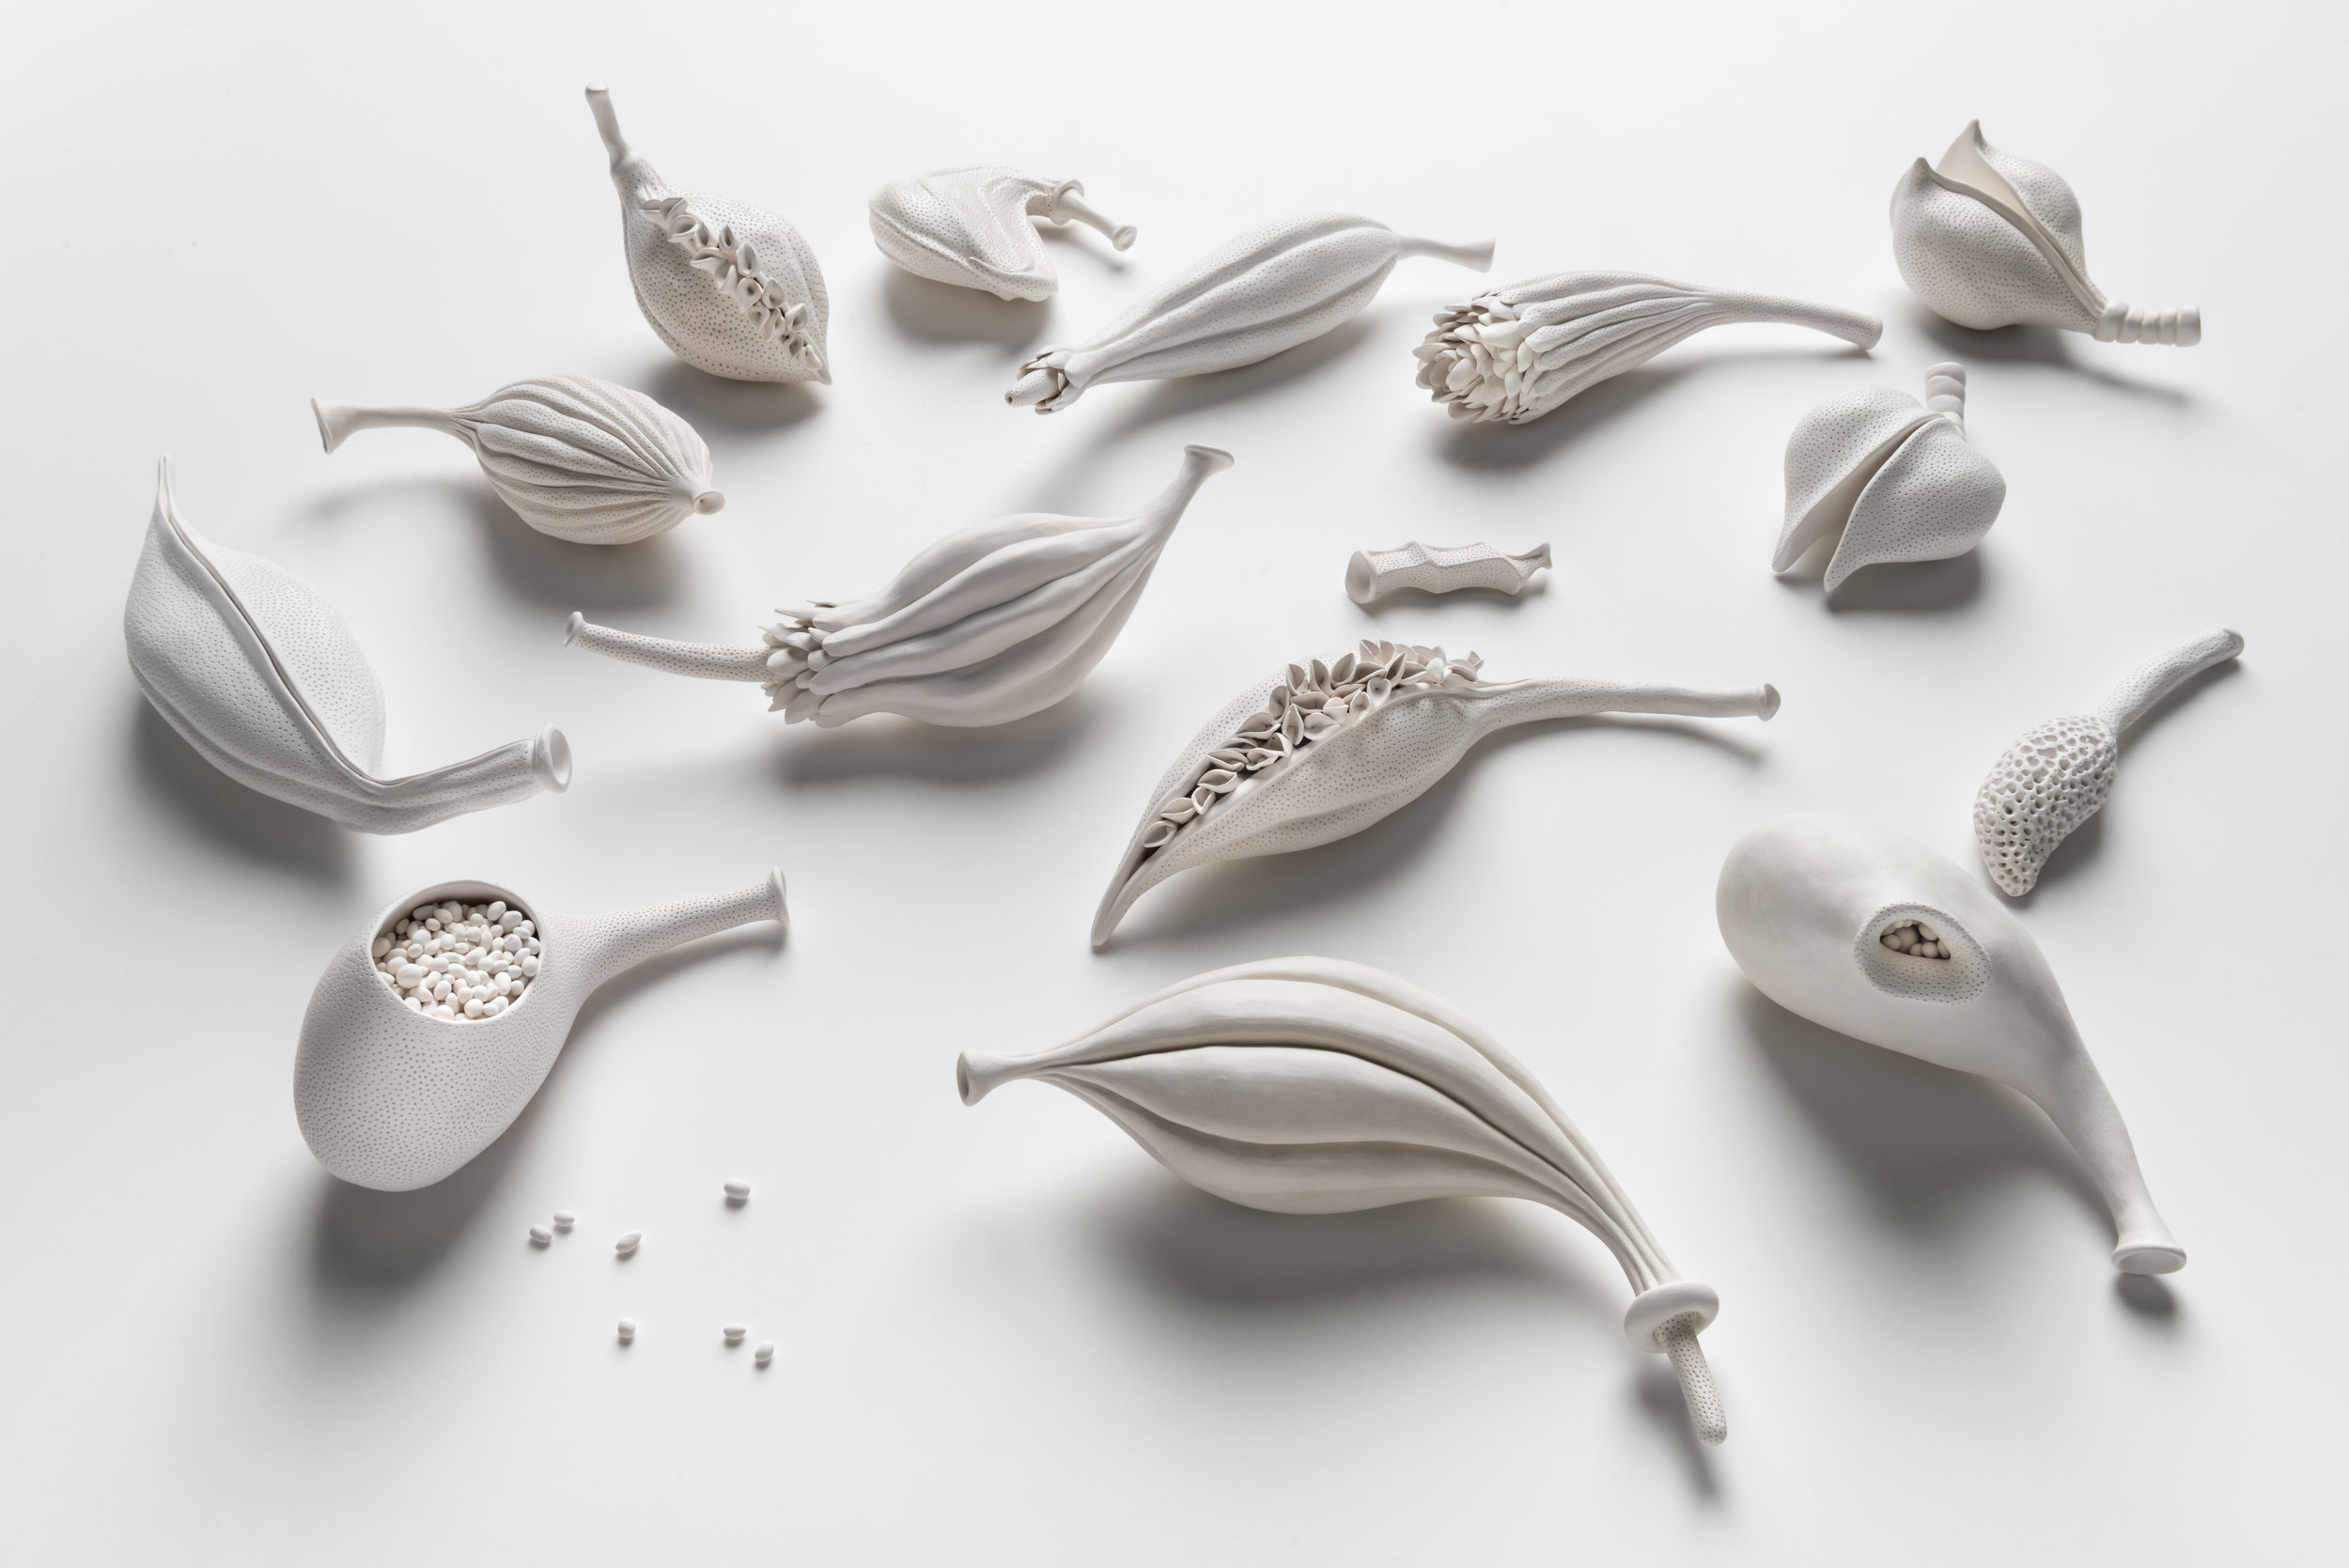 Sarah Rayner,  Gynoecium collection , 2018, hand carved porcelain, Terra Sigillata, 1000c, various dimensions, Photo: Greg Piper.